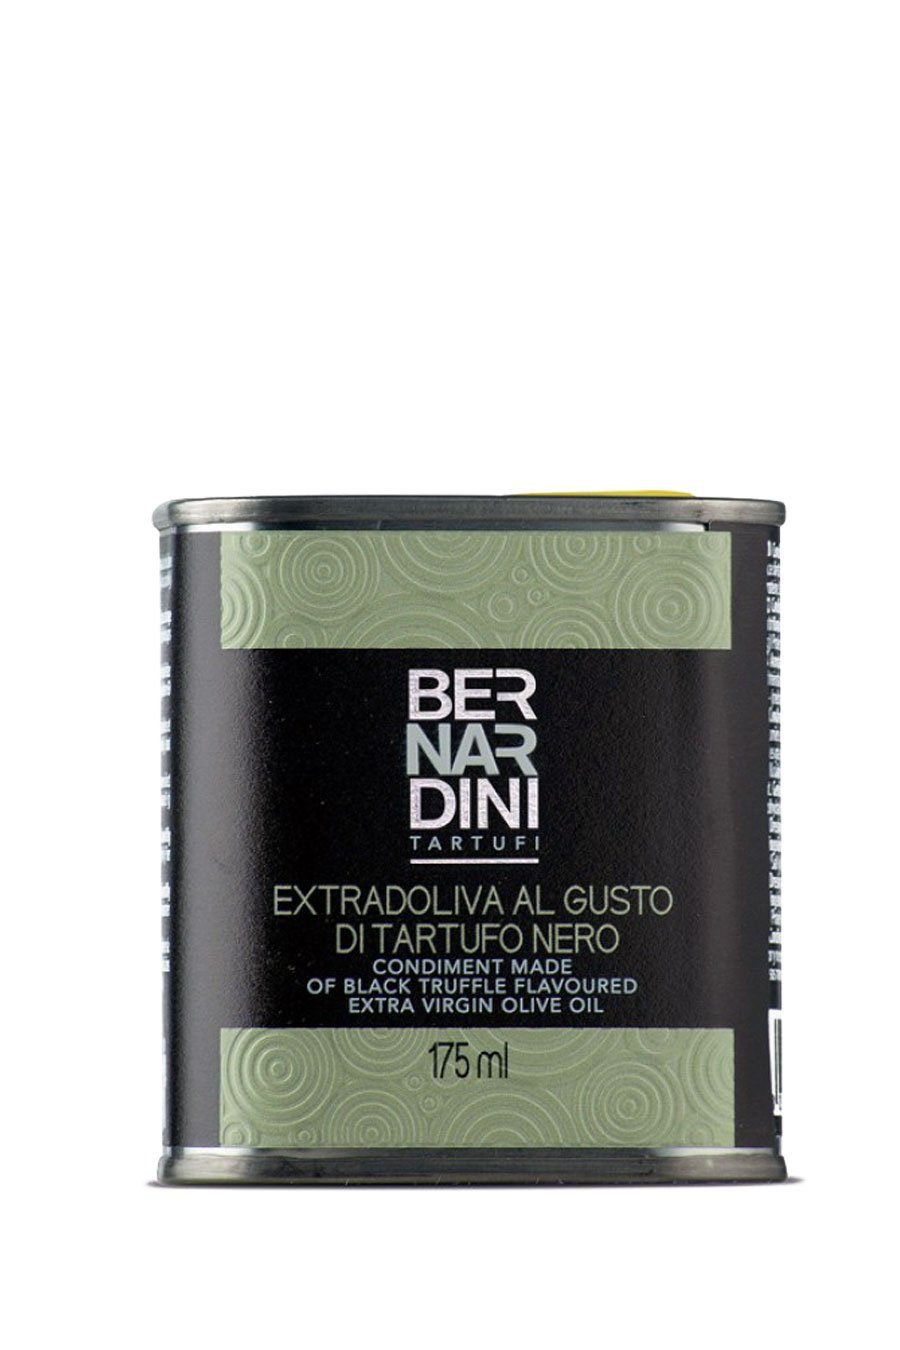 Extra virgin olive oil with black truffle - can 175ml